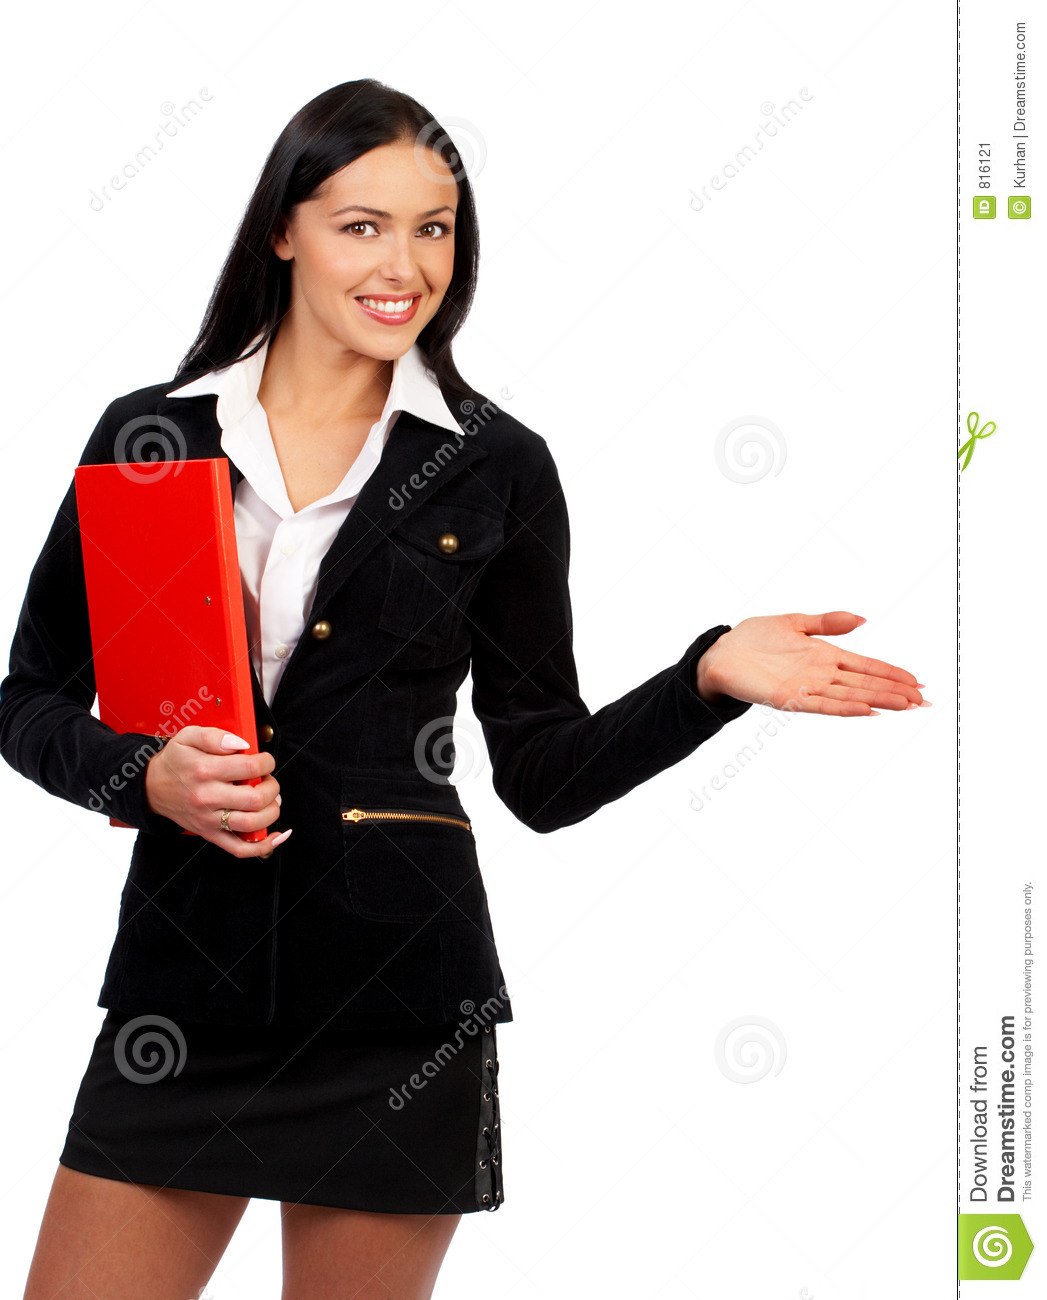 Business: Business Woman Stock Image